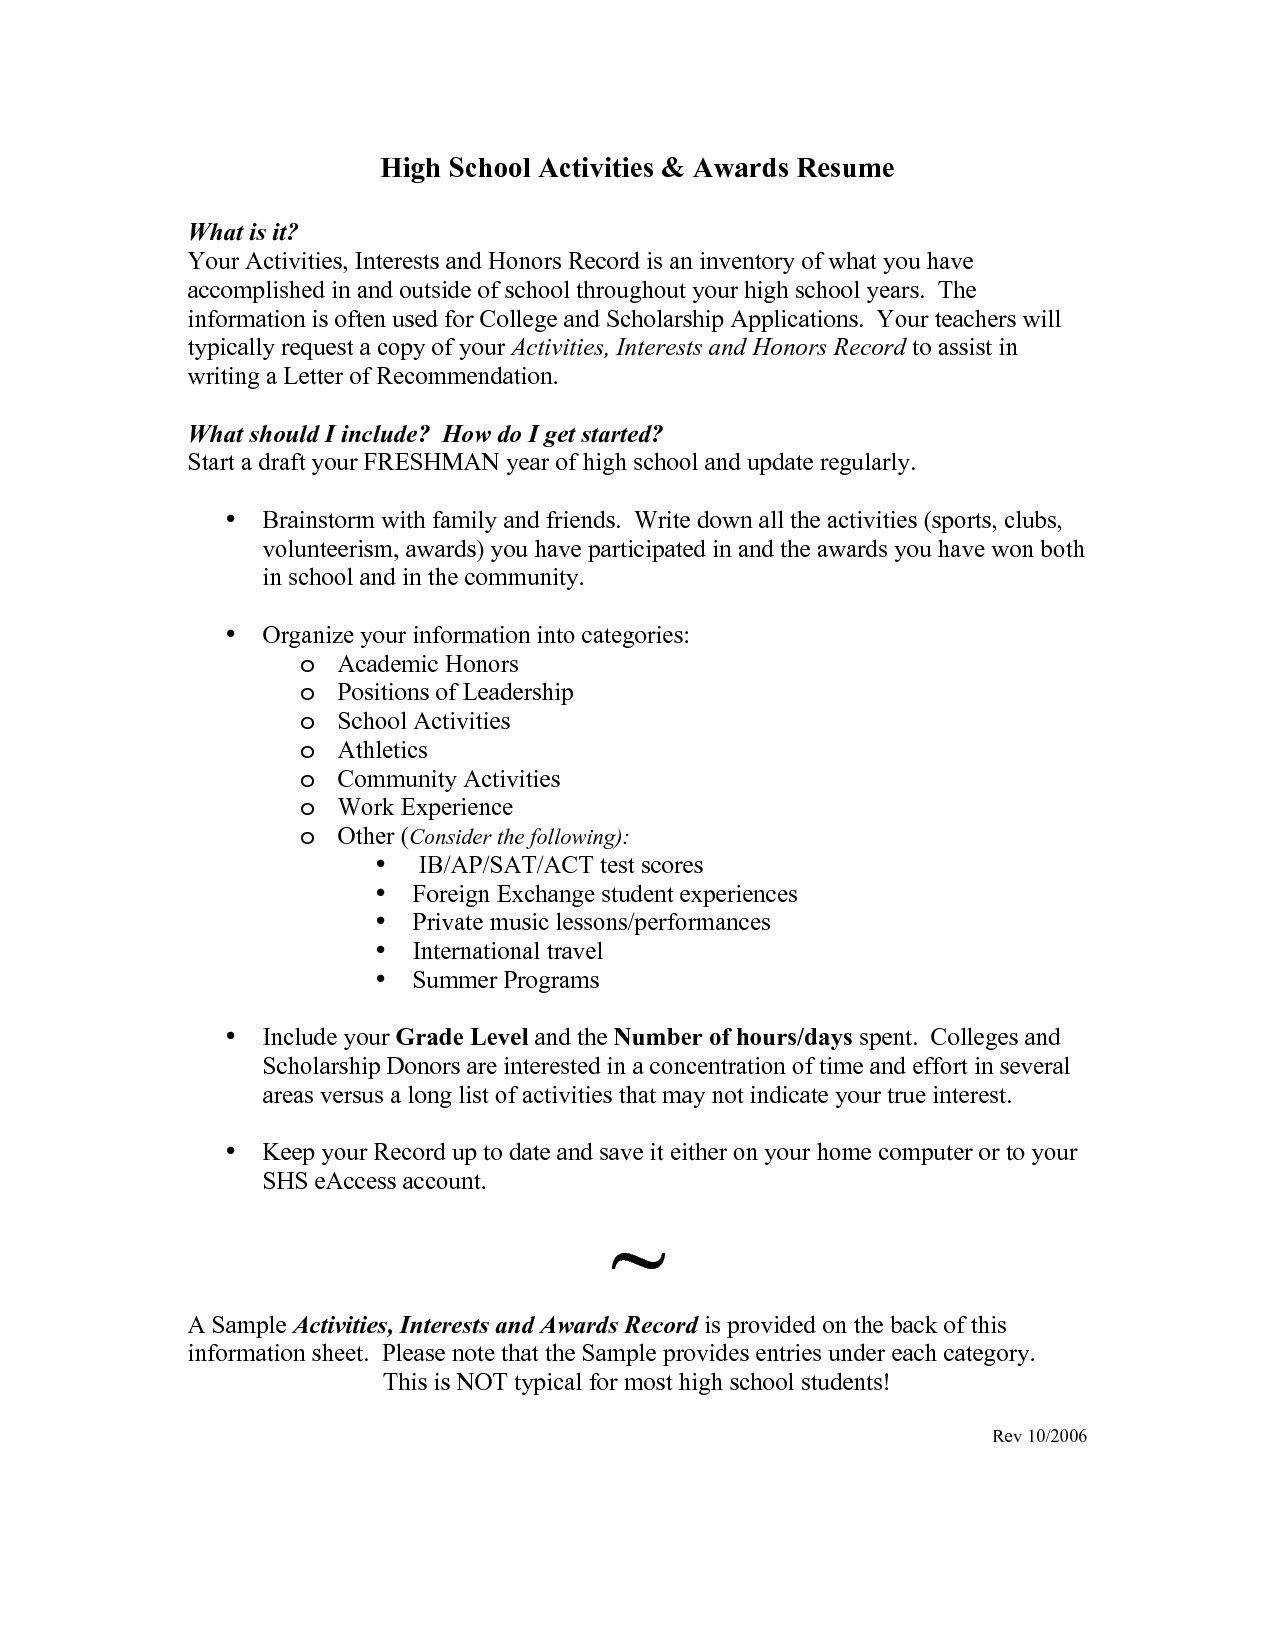 High School Scholarship Resume - High School Resume Template for College Application Beautiful